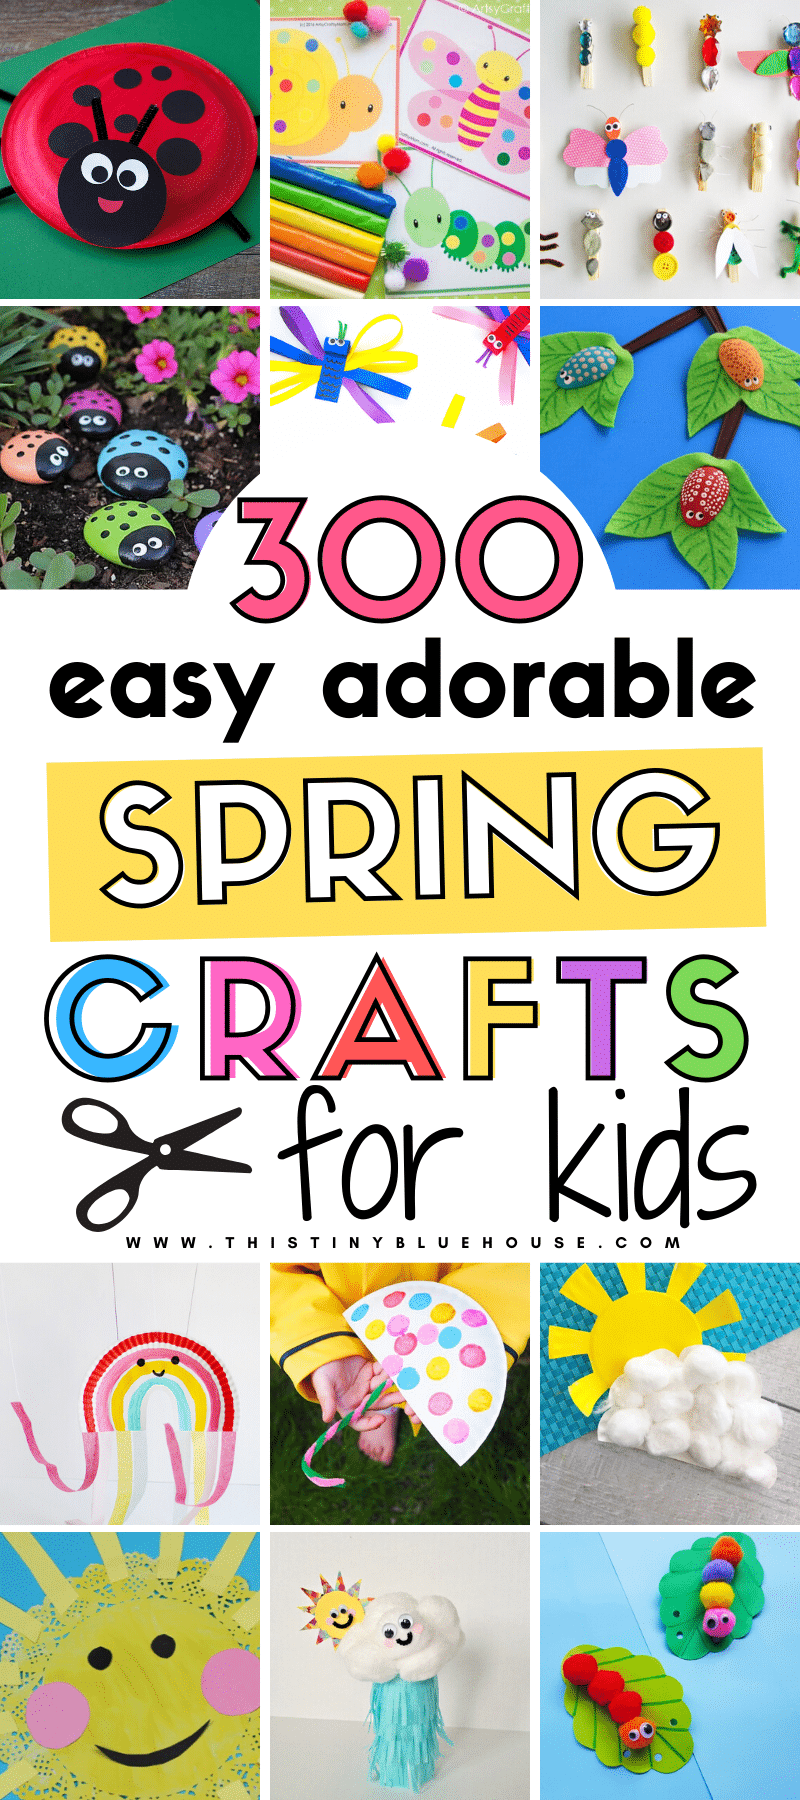 Help the kids welcome spring with these best spring crafts for kids. This MEGA post includes over 300 super fun and easy crafts to make this spring. #springcrafts #springcraftsforkids #easyspringcrafts #easyspringcraftsfortoddlers #easyspringcraftsforpreschoolers #simplespringcraftsforyoungkids #springcraftideas #easyspringcraftideas